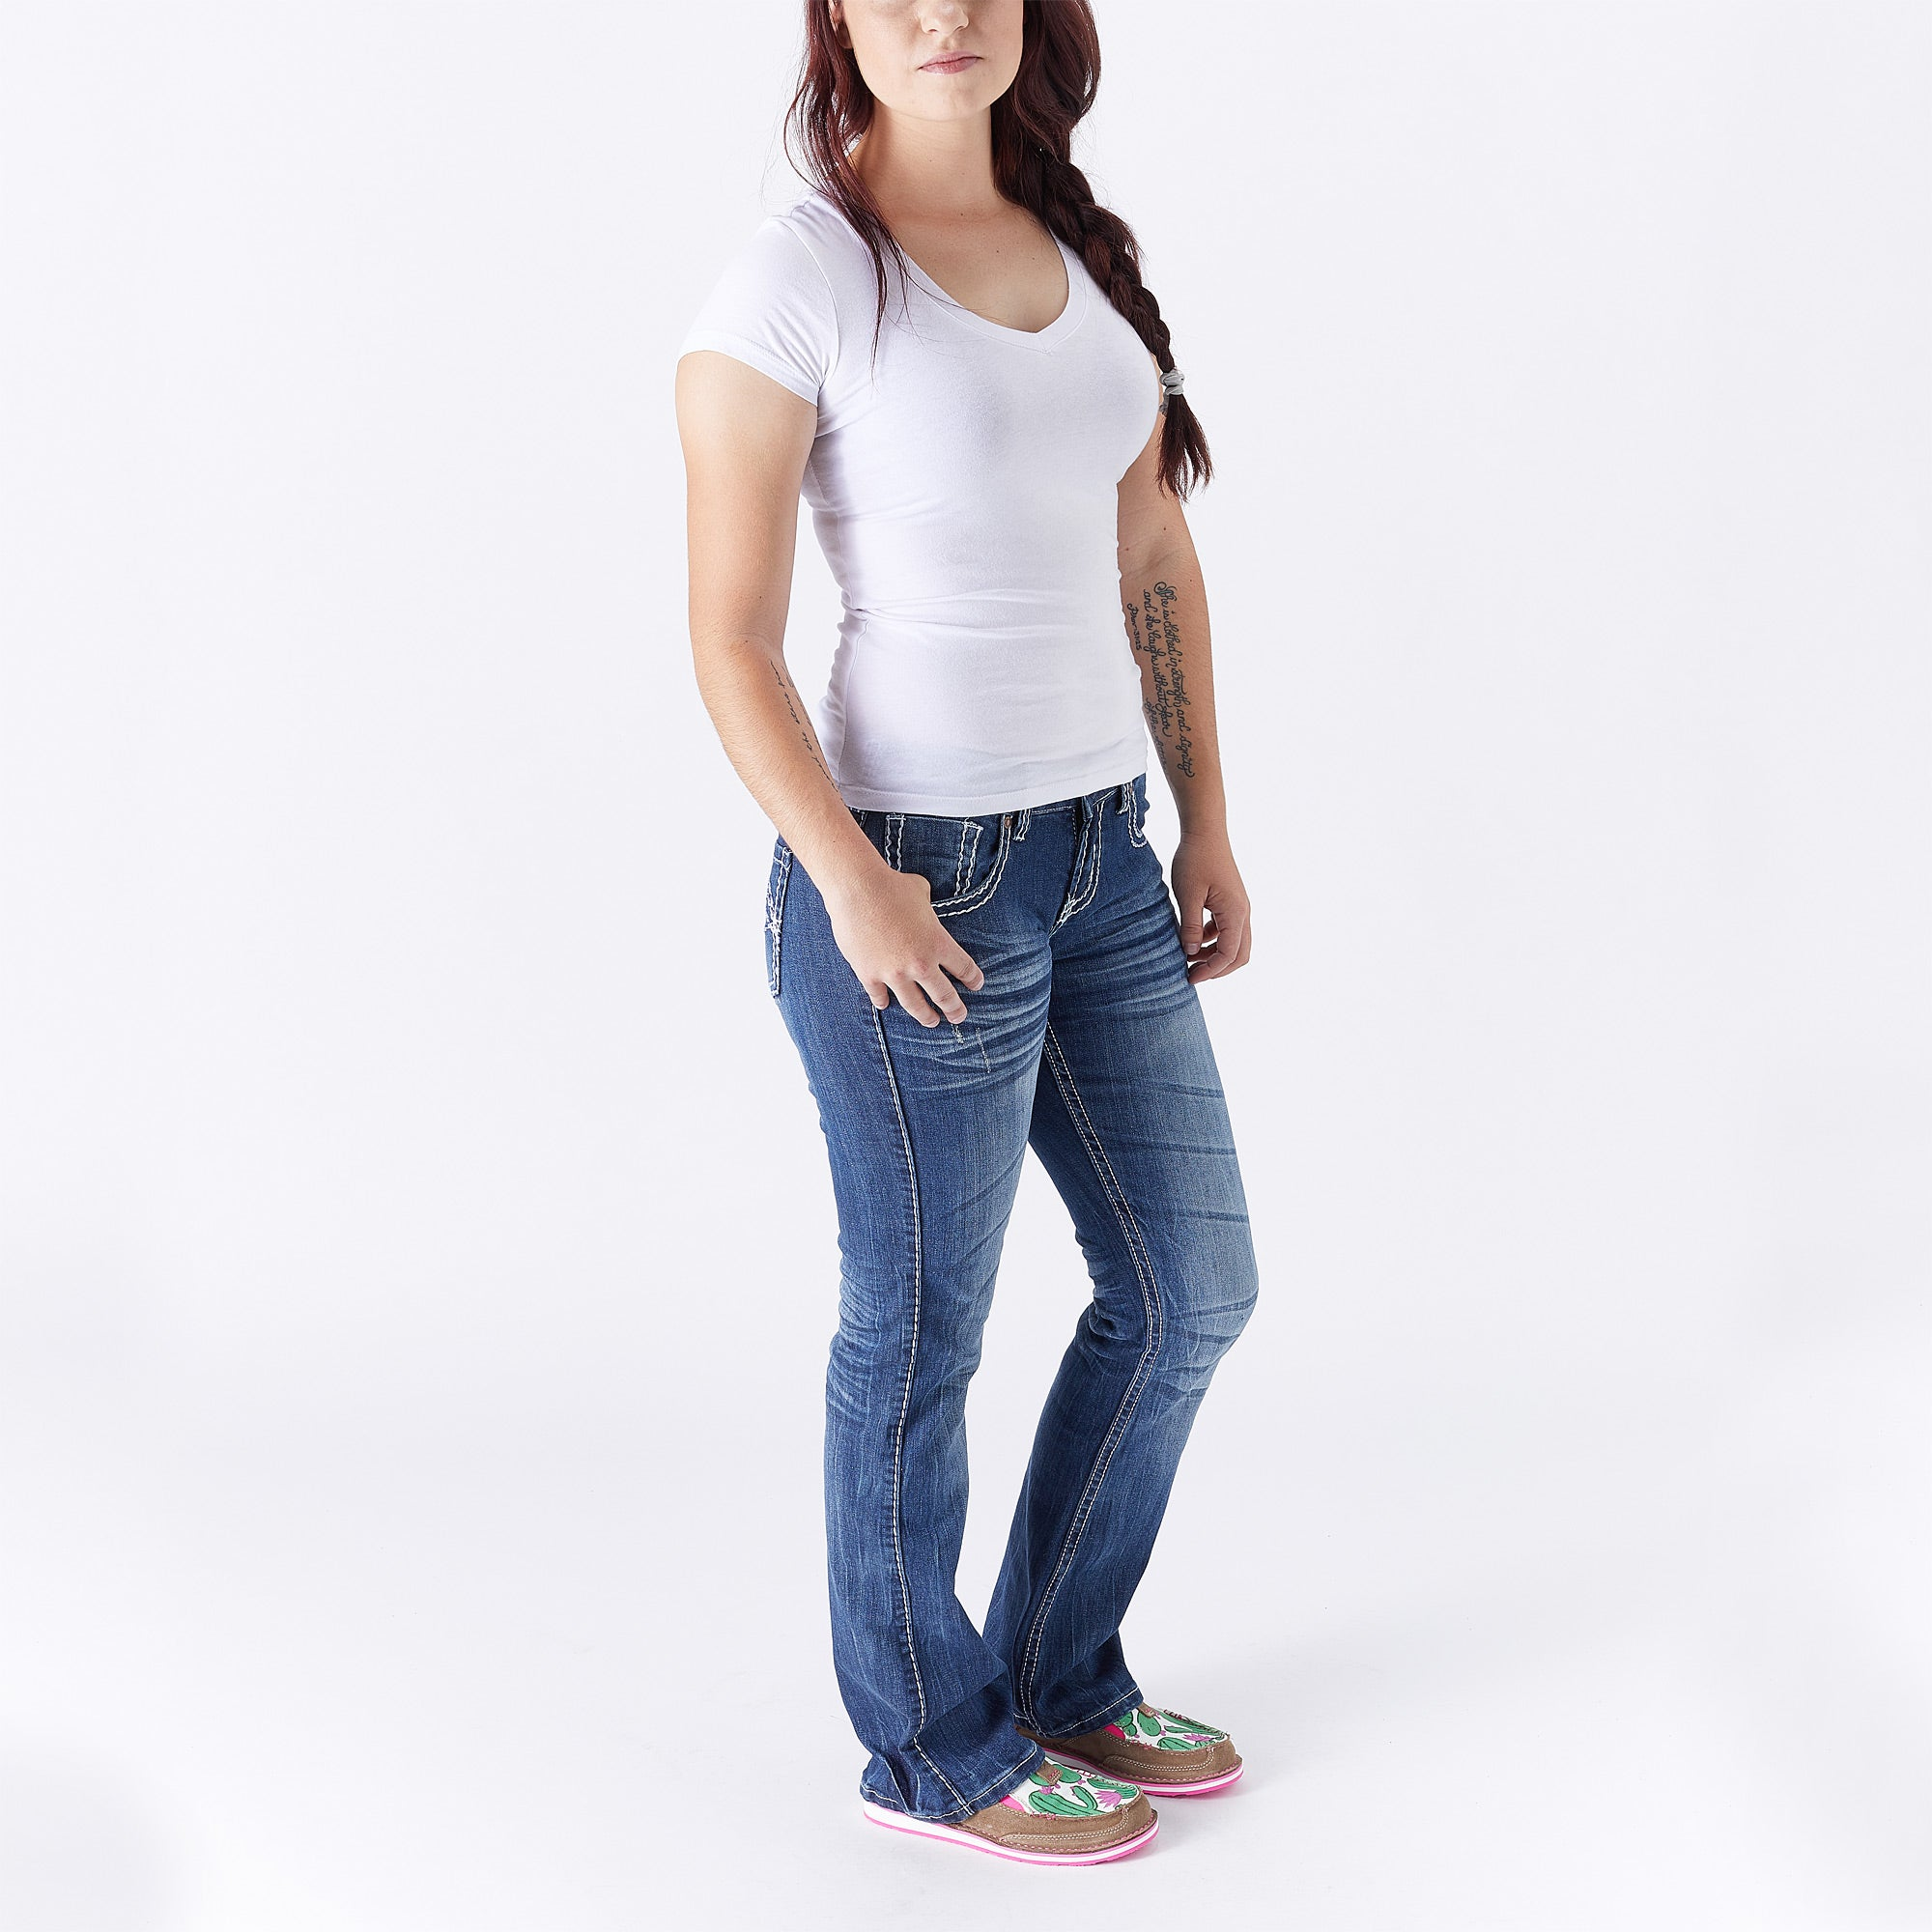 Cowgirl Tuff Edgy Jeans W Barbed Wire Pocket Embroidery Riding Warehouse